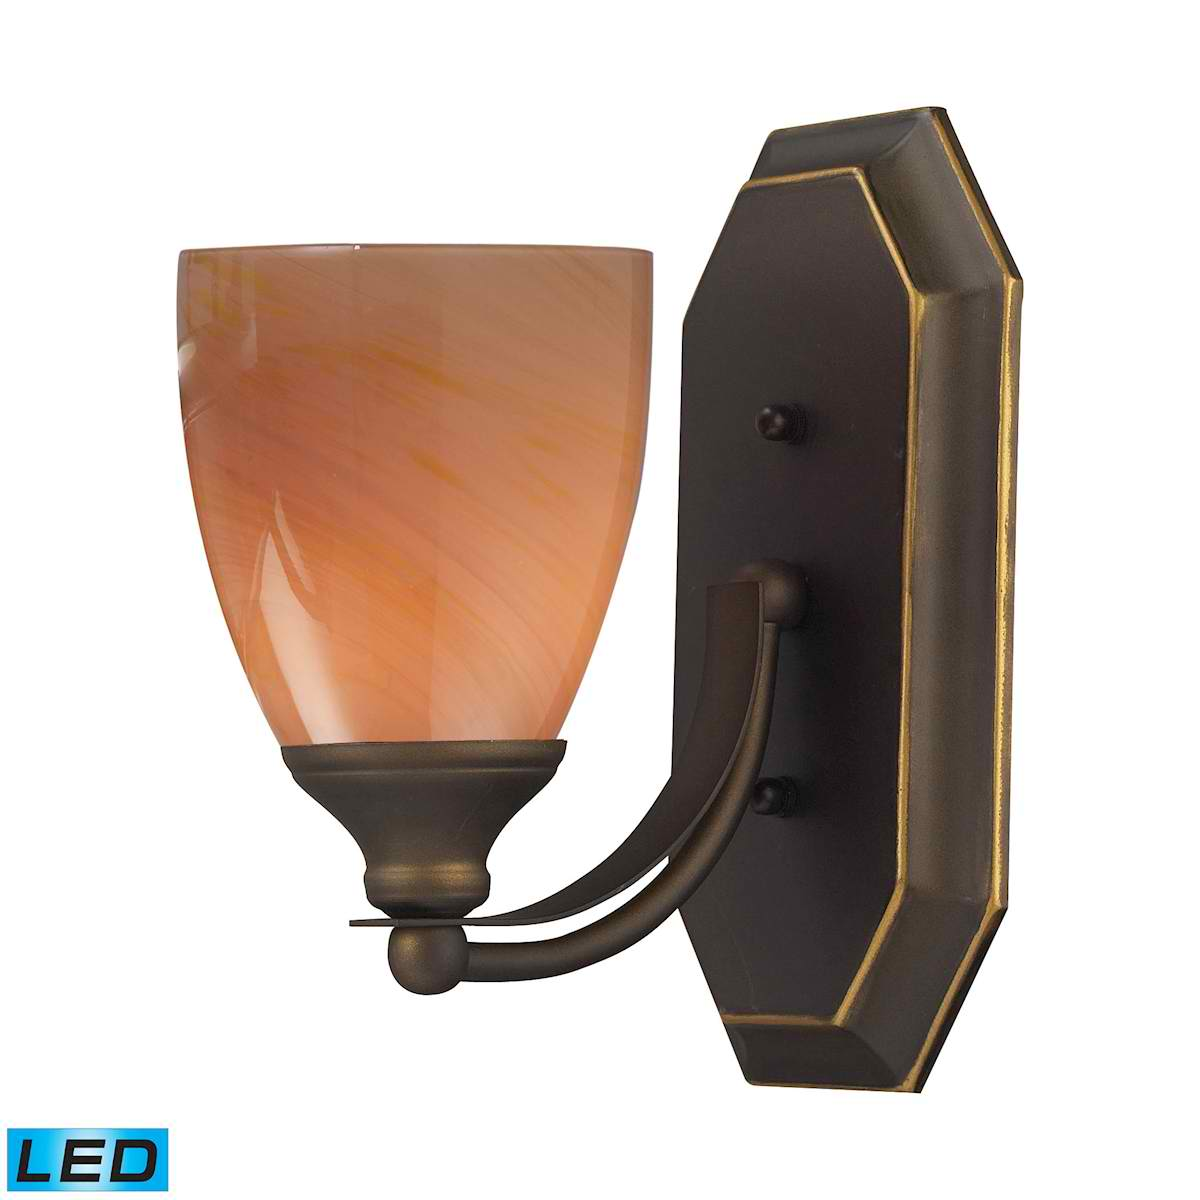 1 Light Vanity in Aged Bronze and Sandy Glass - LED Offering Up To 800 Lumens (60 Watt Equivalent)